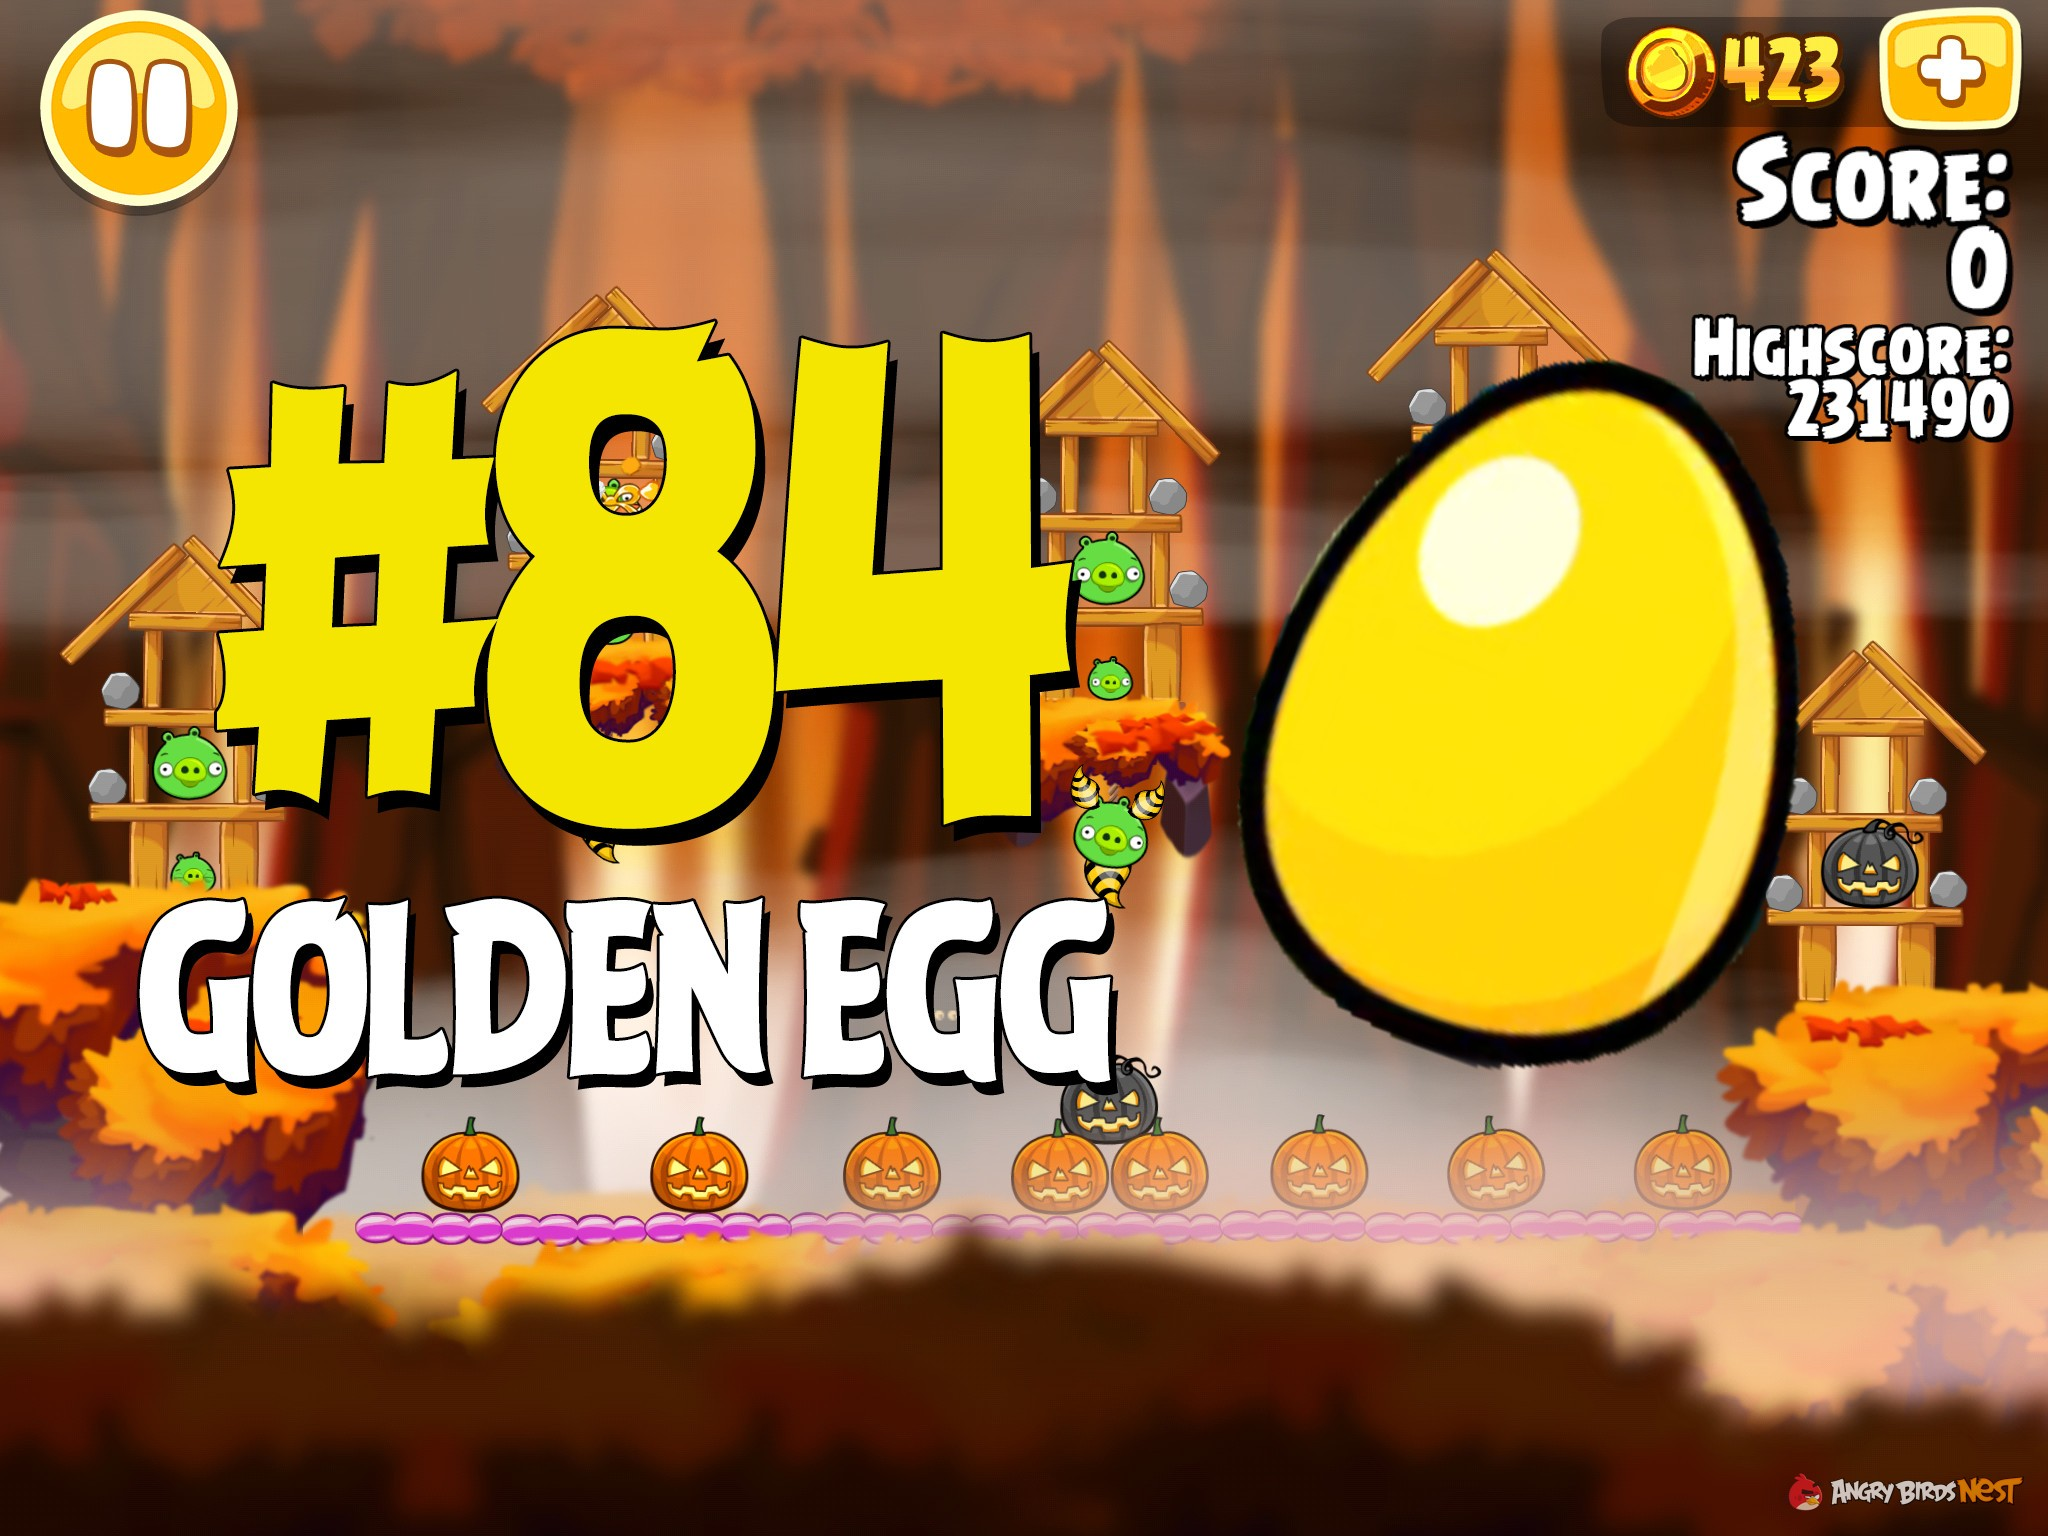 Angry Birds Hammier Things angry birds seasons hammier things golden egg #84